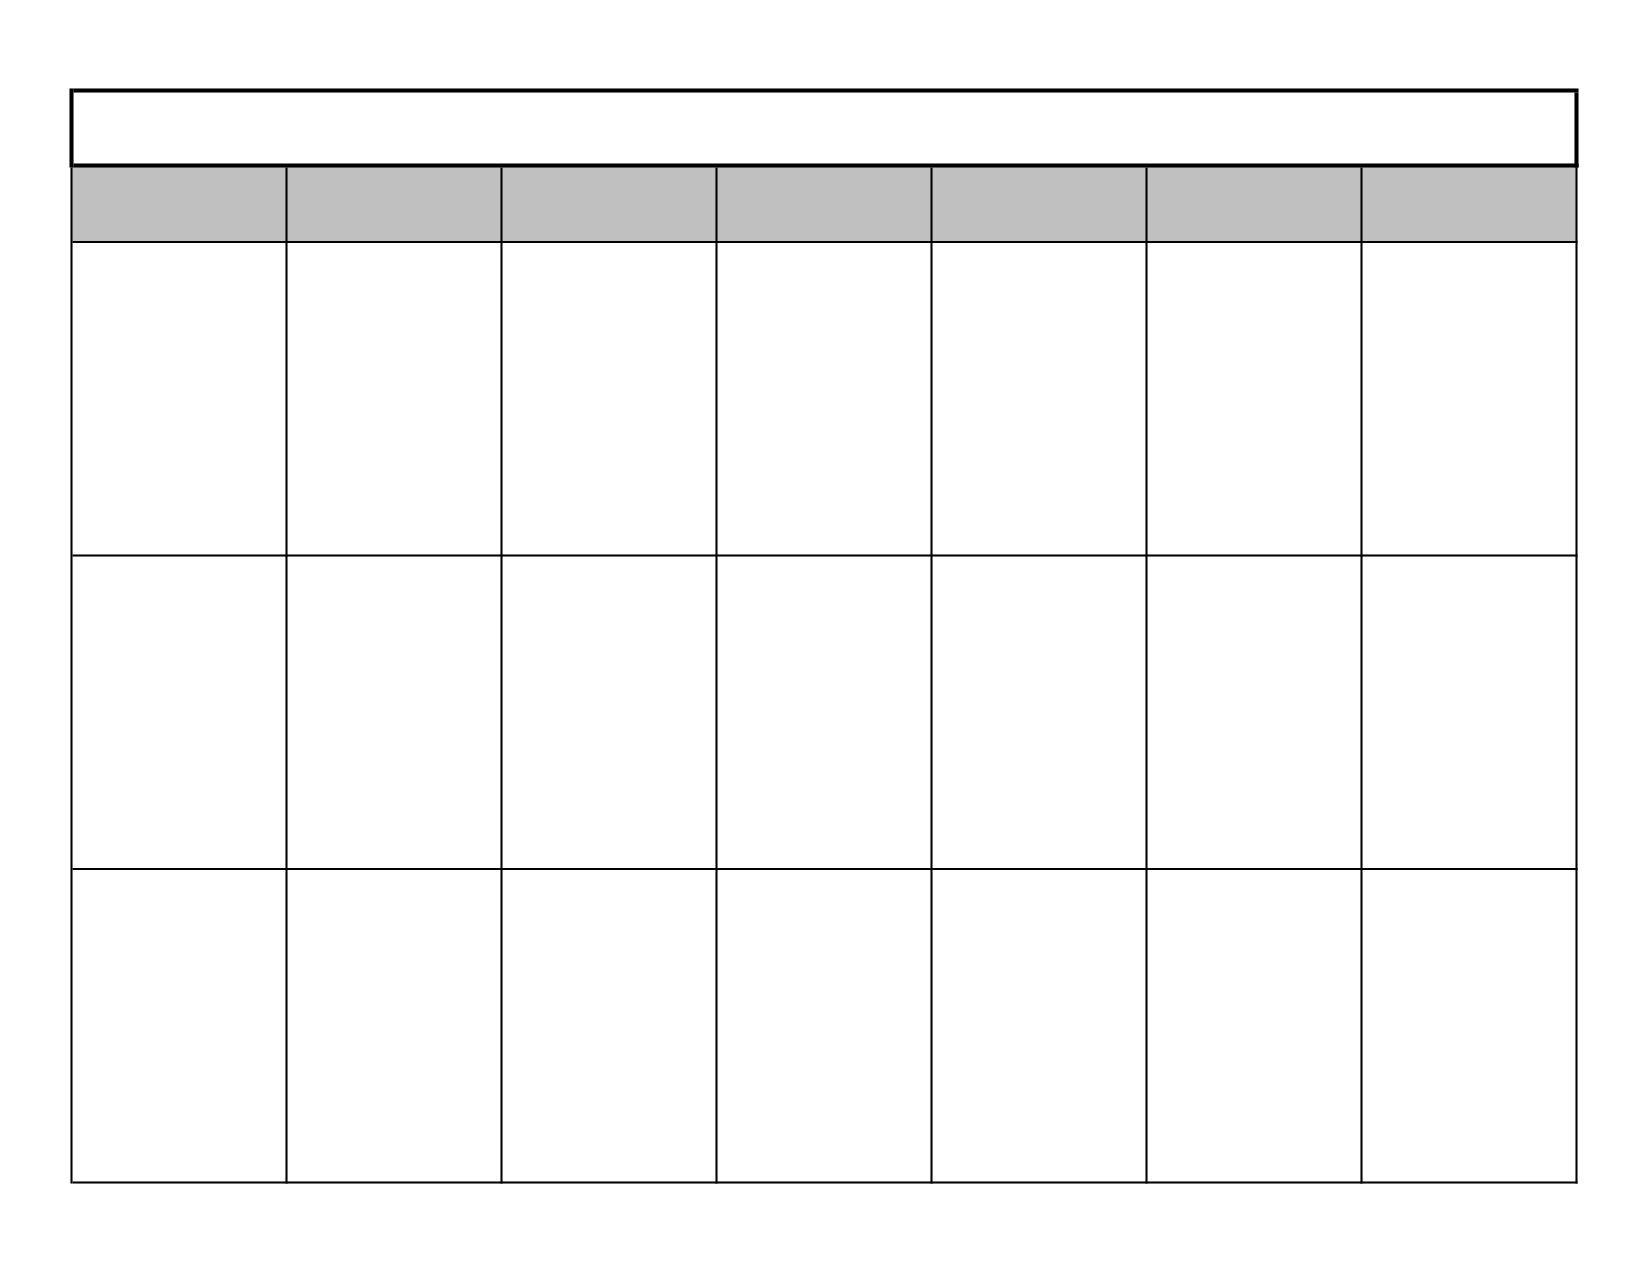 picture relating to Blank Weekly Calendar Template named 16 Blank Printable Weekly Calendars Templates Pictures - Blank